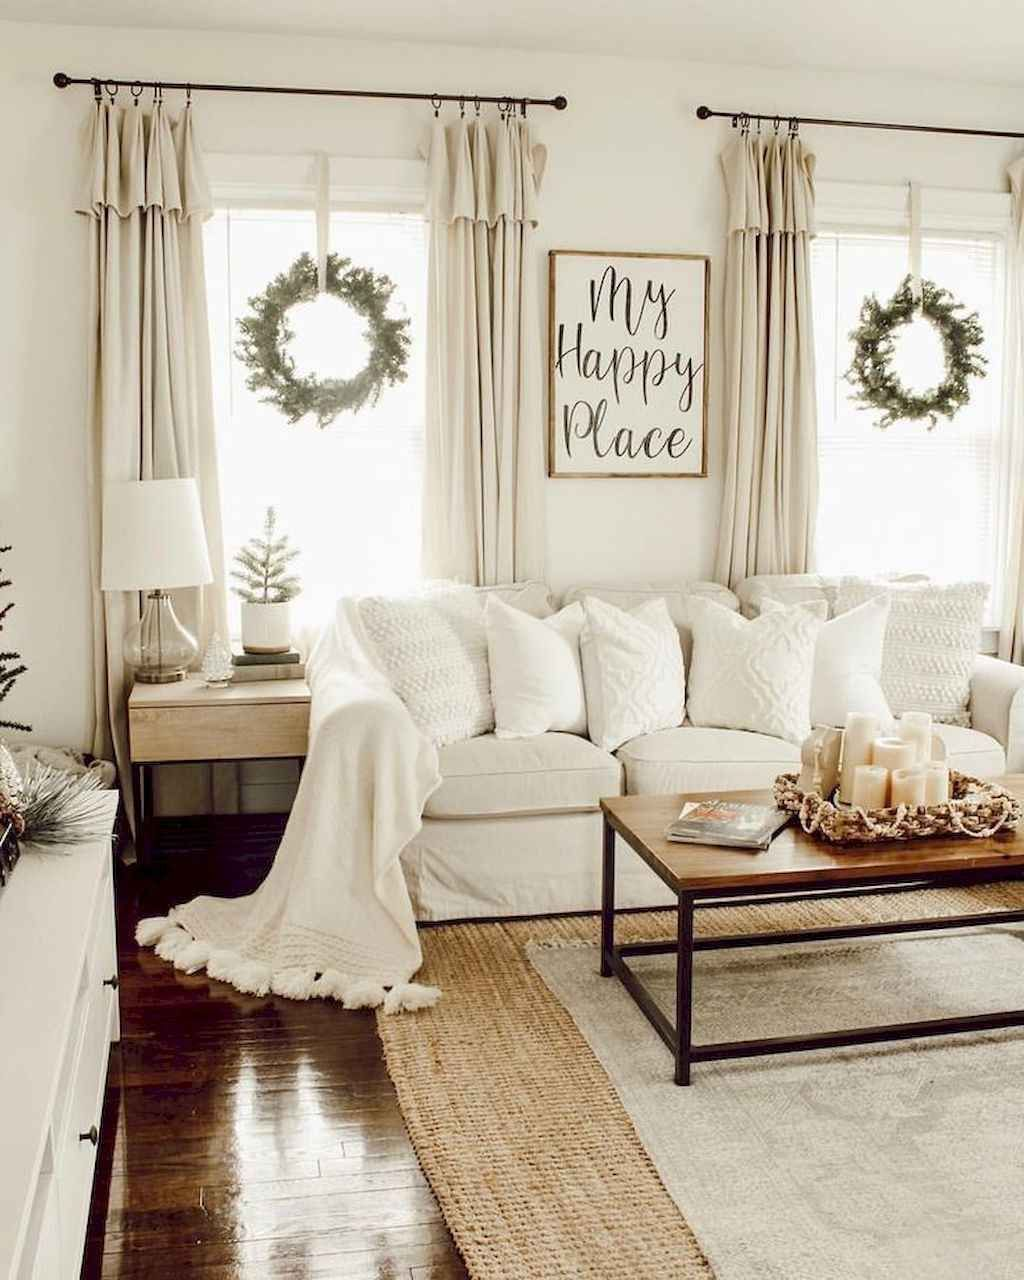 37 Awesome Rustic Farmhouse Living Room Decorating Ideas In 2020 Farmhouse Decor Living Room Farm House Living Room Curtains Living Room